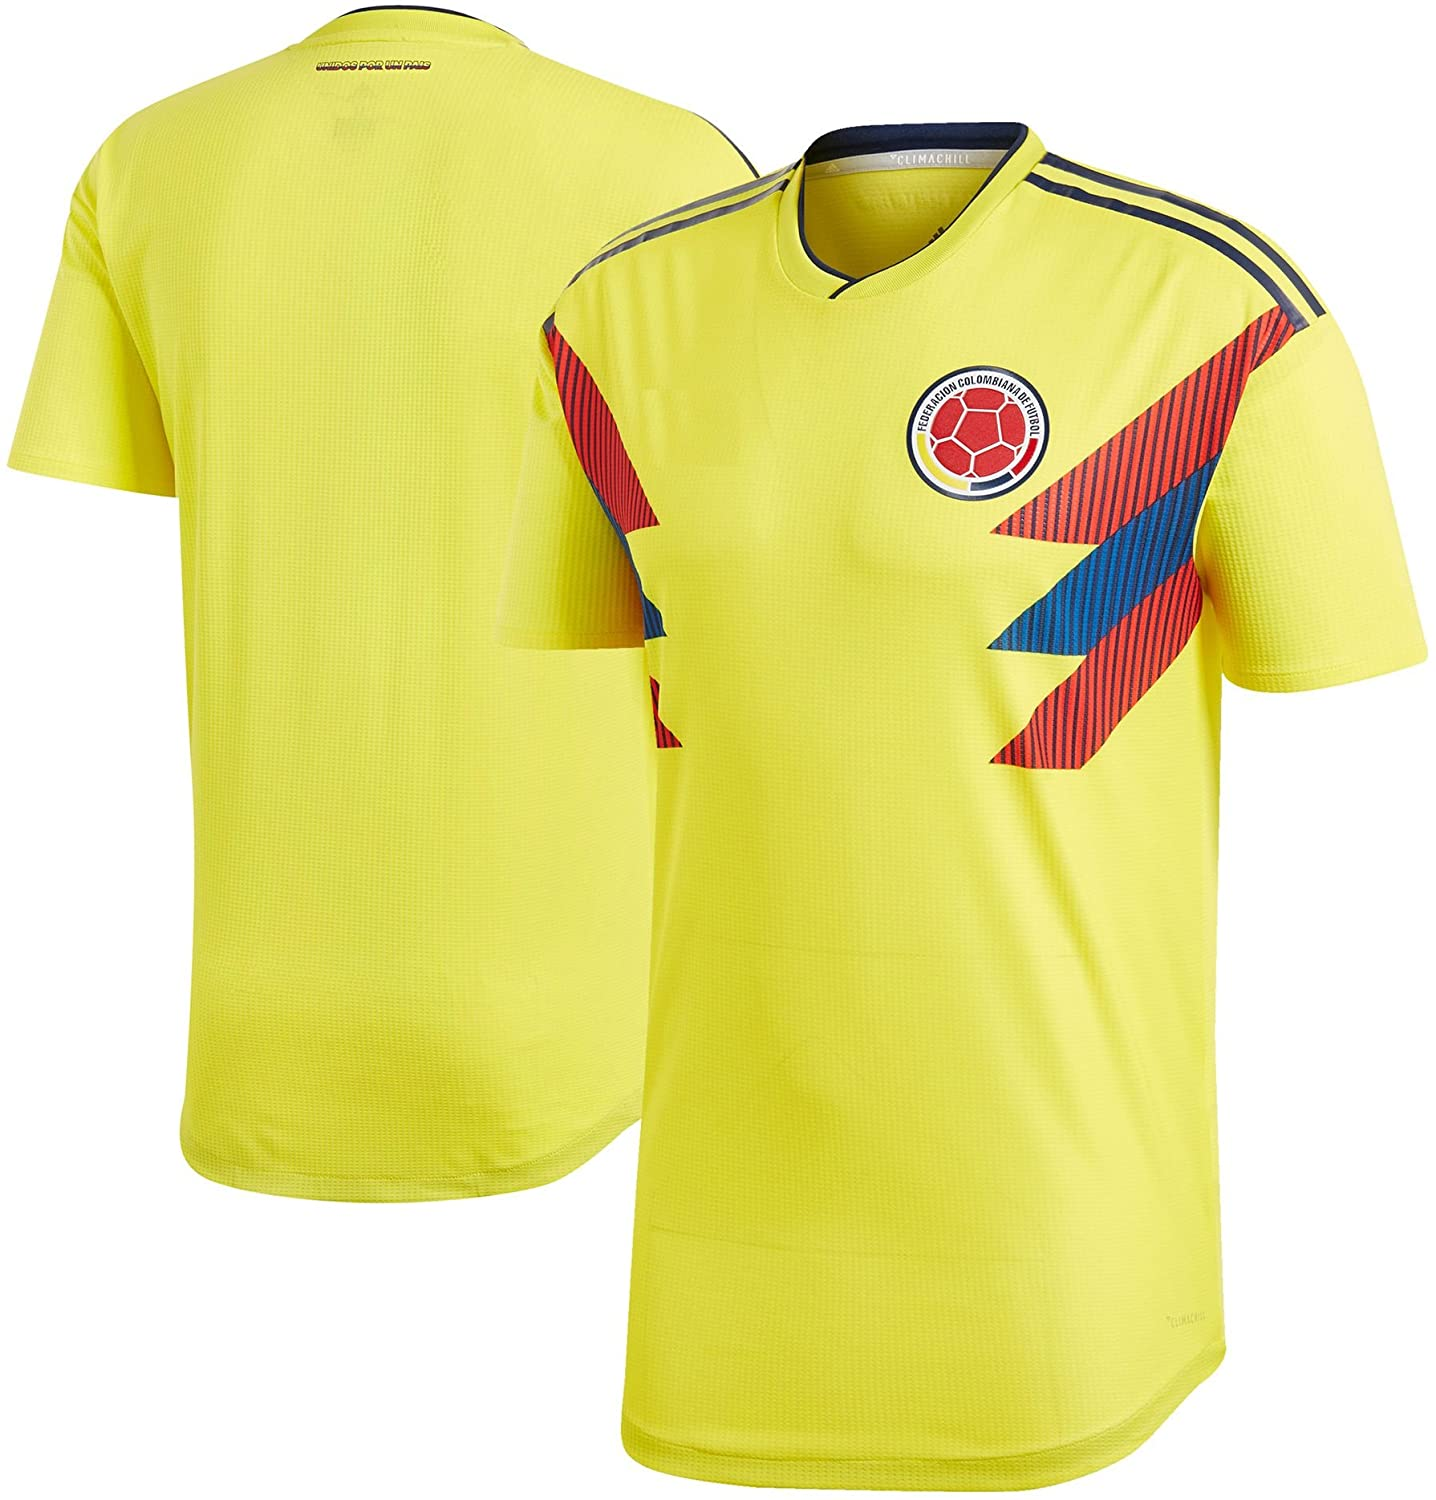 Kitbag Colombia Home Men's Soccer Short Sleeve Jersey T-Shirt World Cup Adult Sizes ✓ Best Gift for Soccer Fans